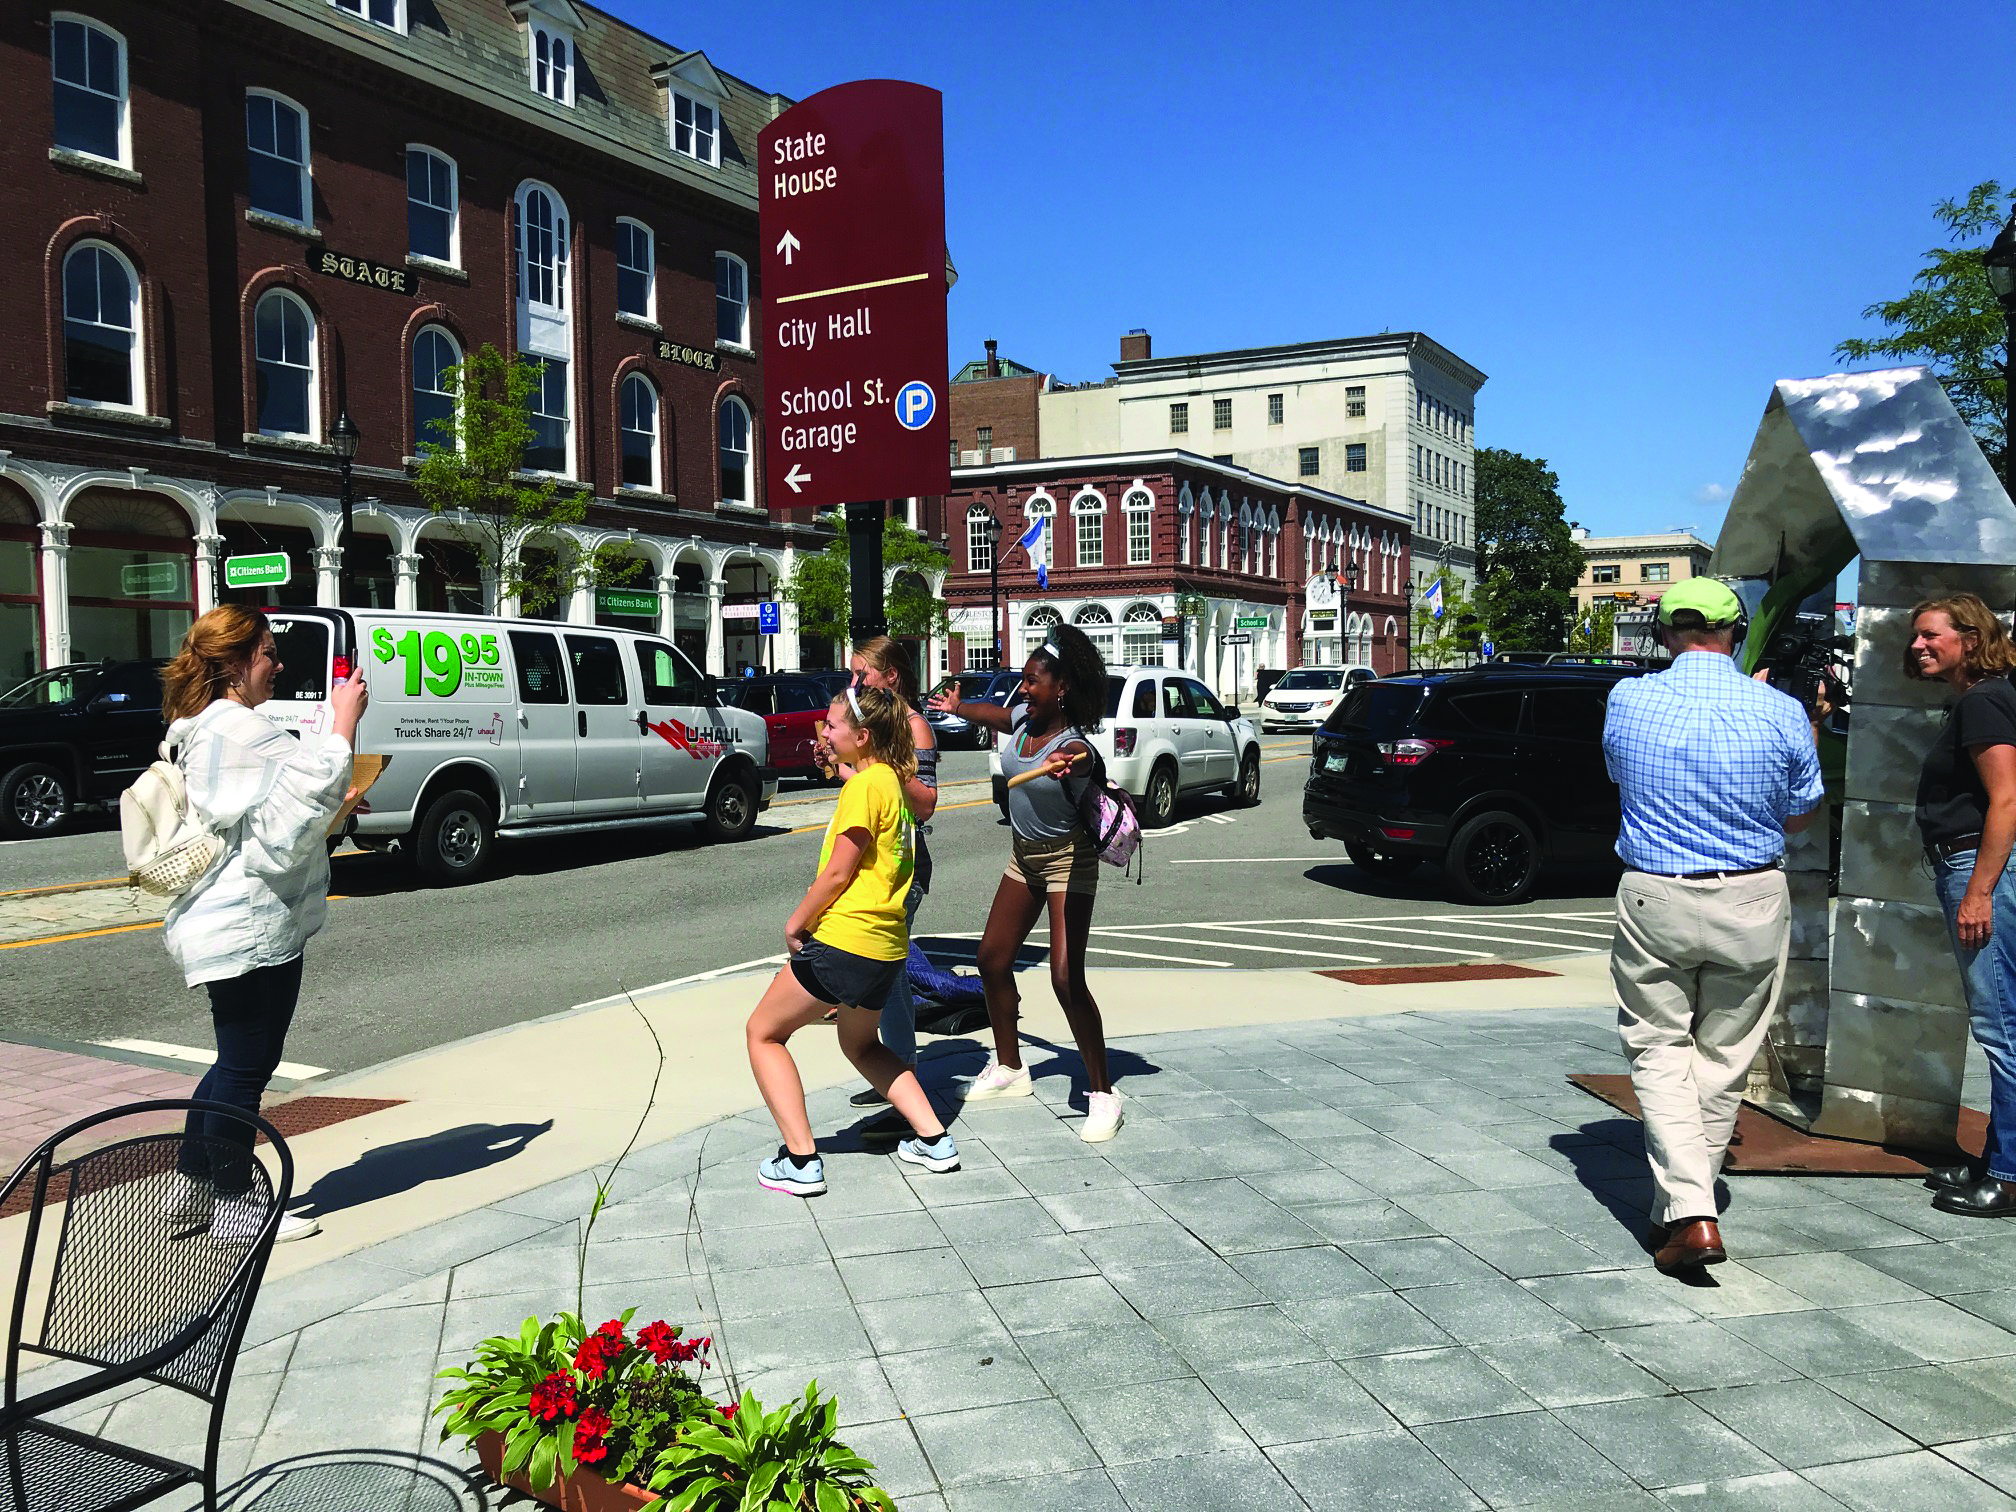 Artists invited to showcase sculptures in downtown Concord, New Hampshire.